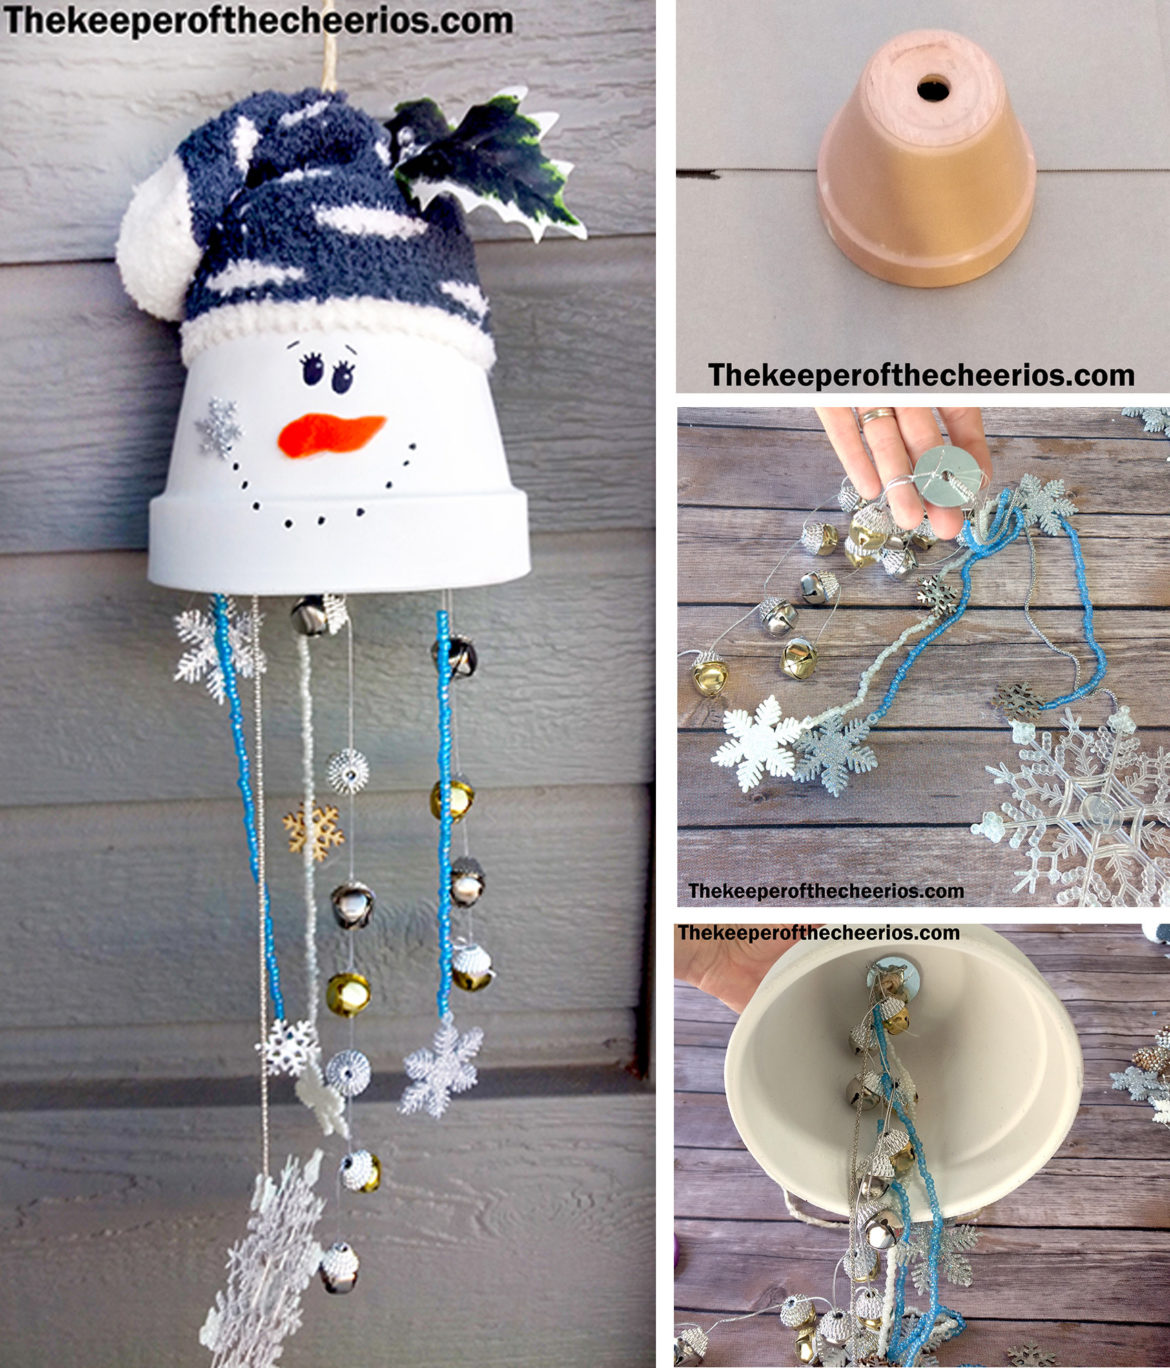 Made From Clay Pots Crafts: Clay Pot Snowman Wind Chime